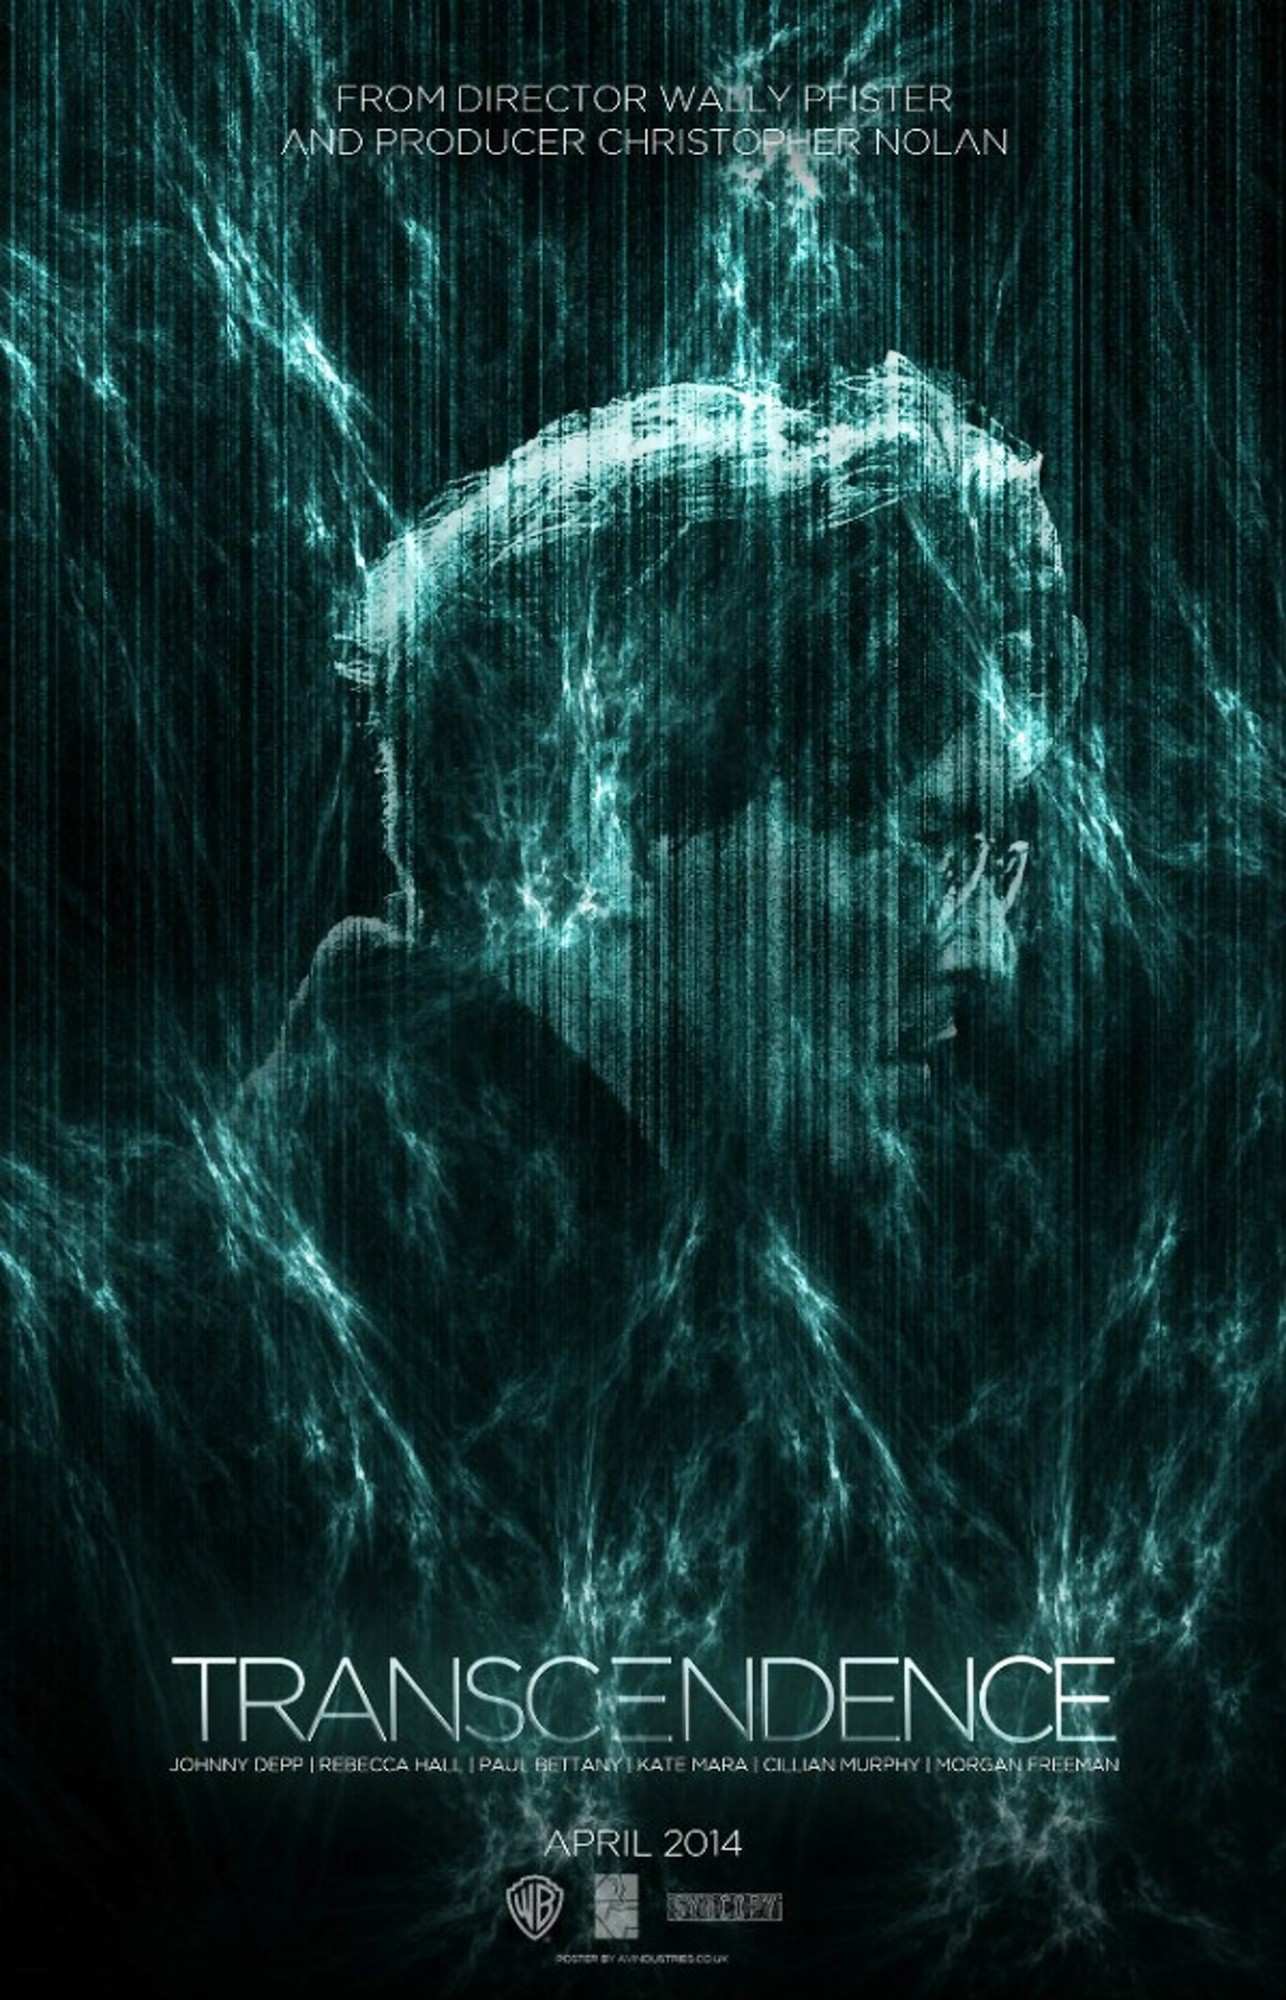 transcendence-movie-poster-distorted